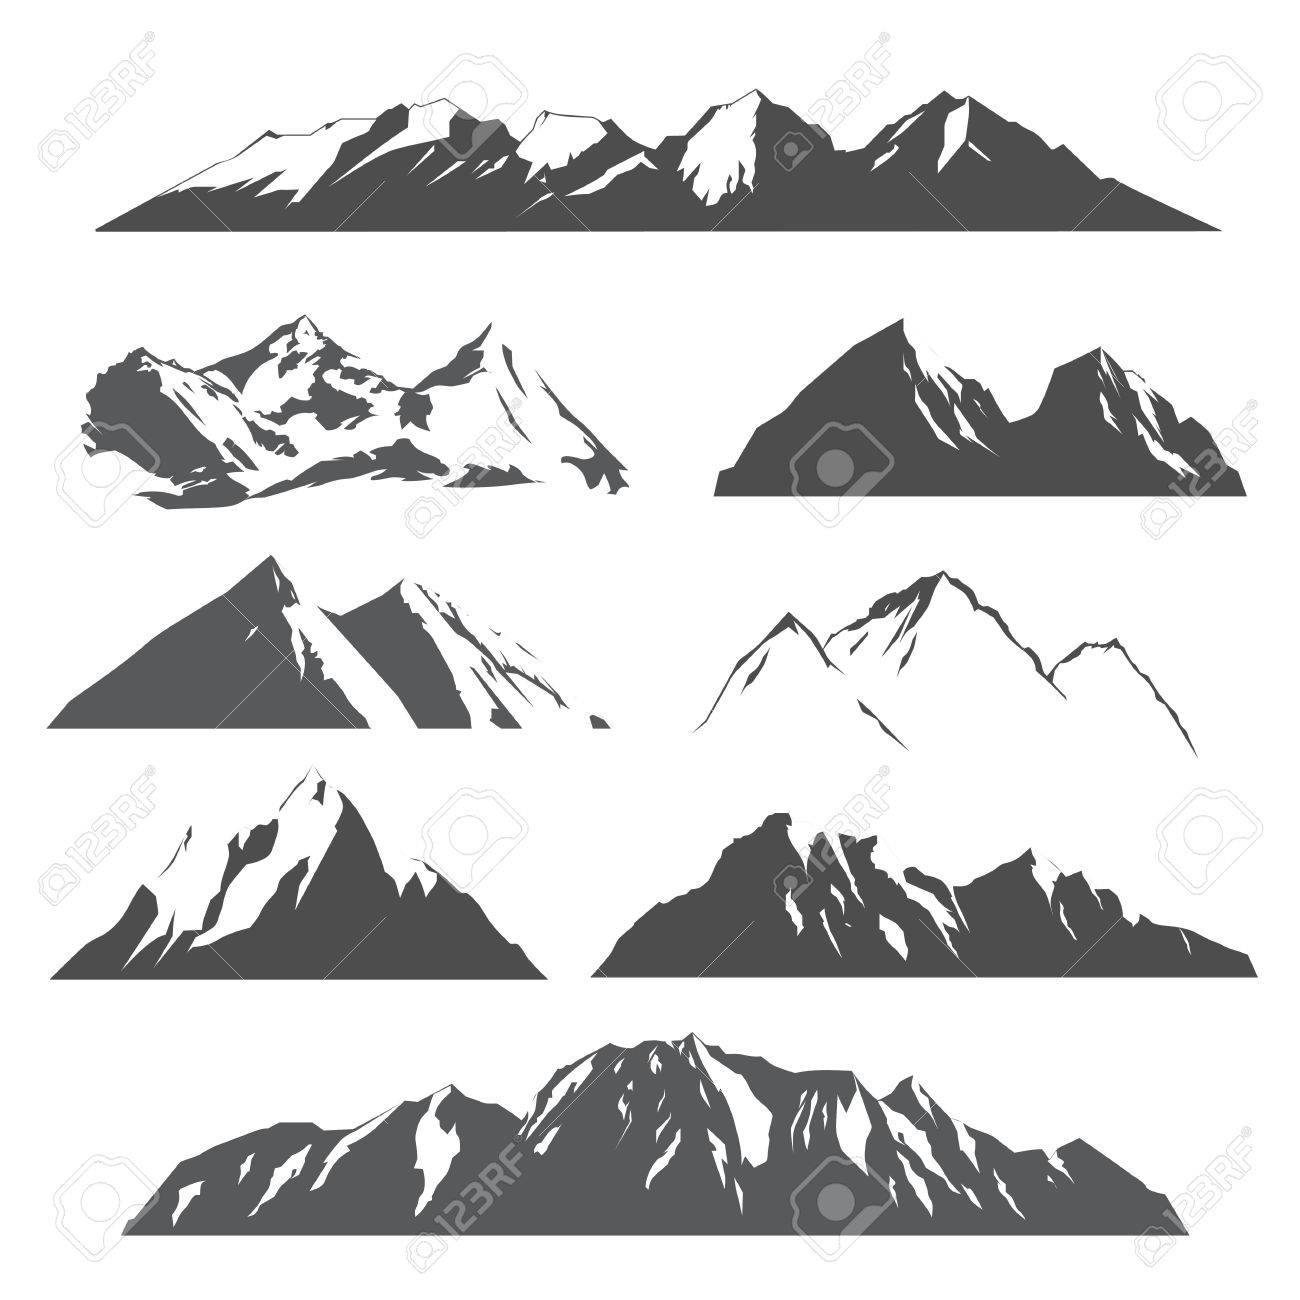 set of vector silhouettes of the mountains on white background - 72315455